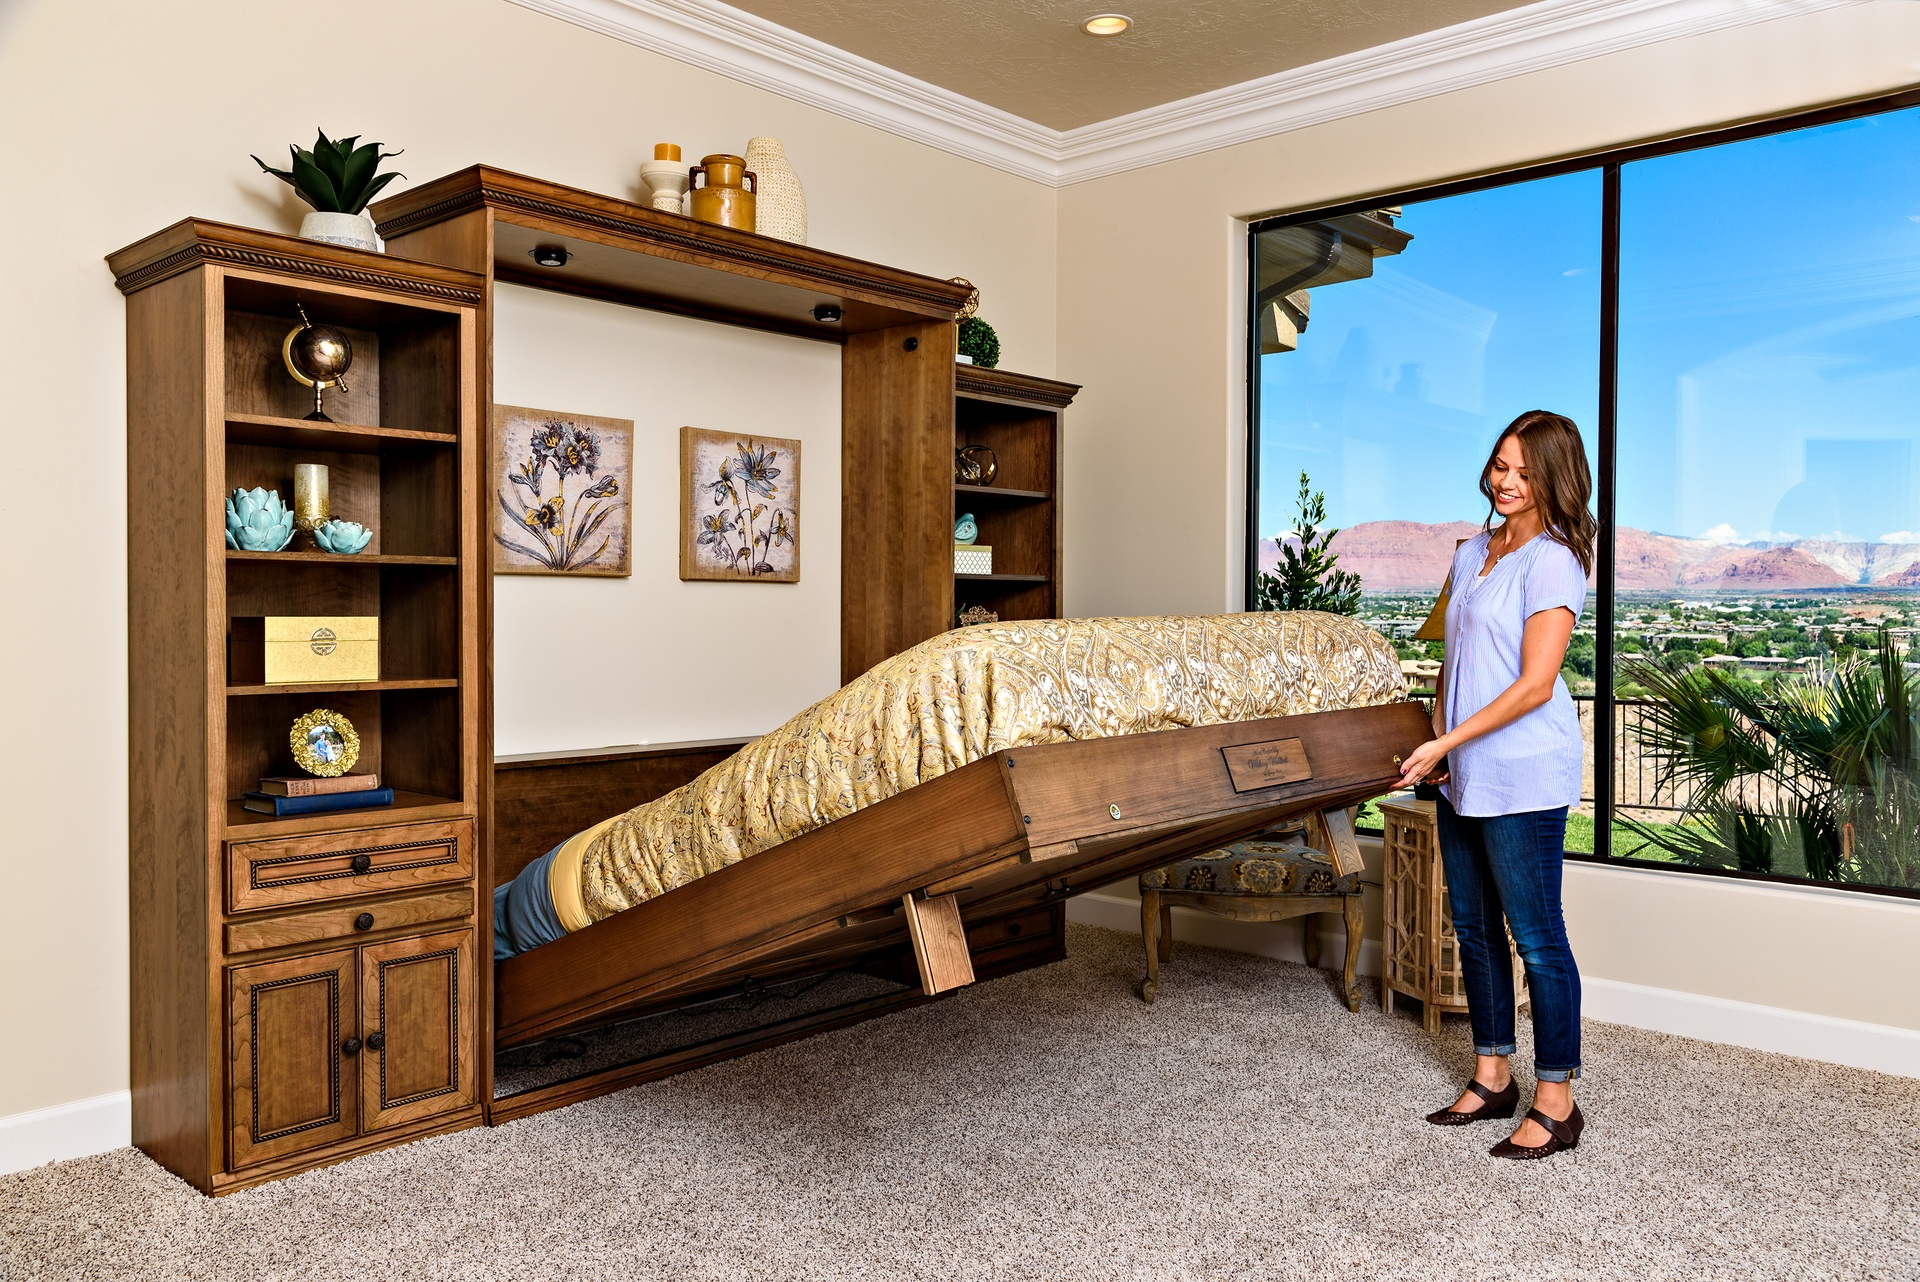 st george, utah wall beds and murphy beds | wilding wallbeds